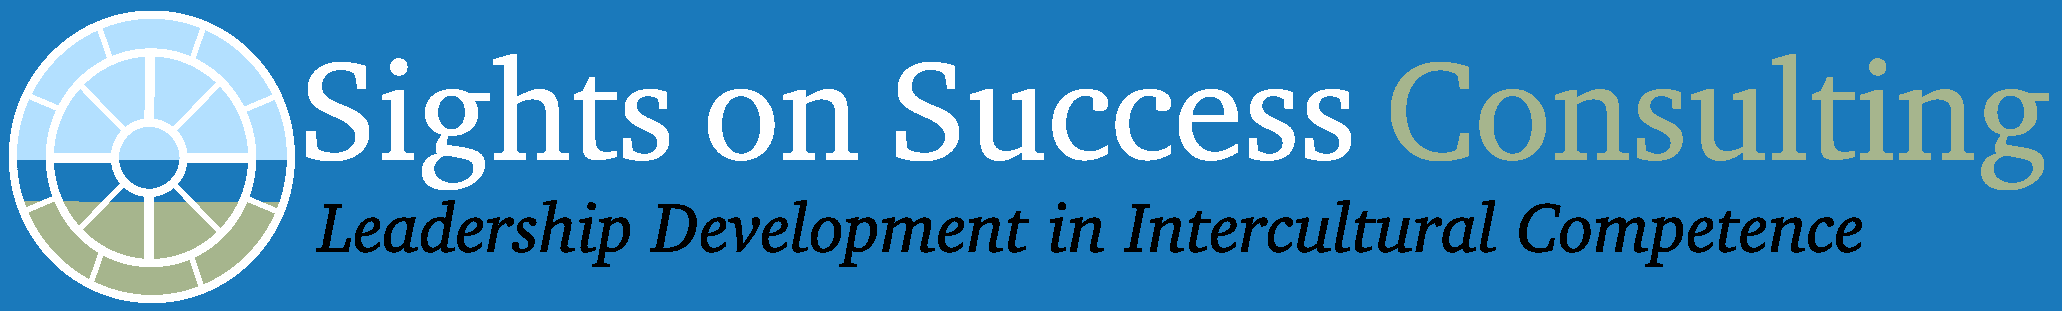 Sights on Success Consulting